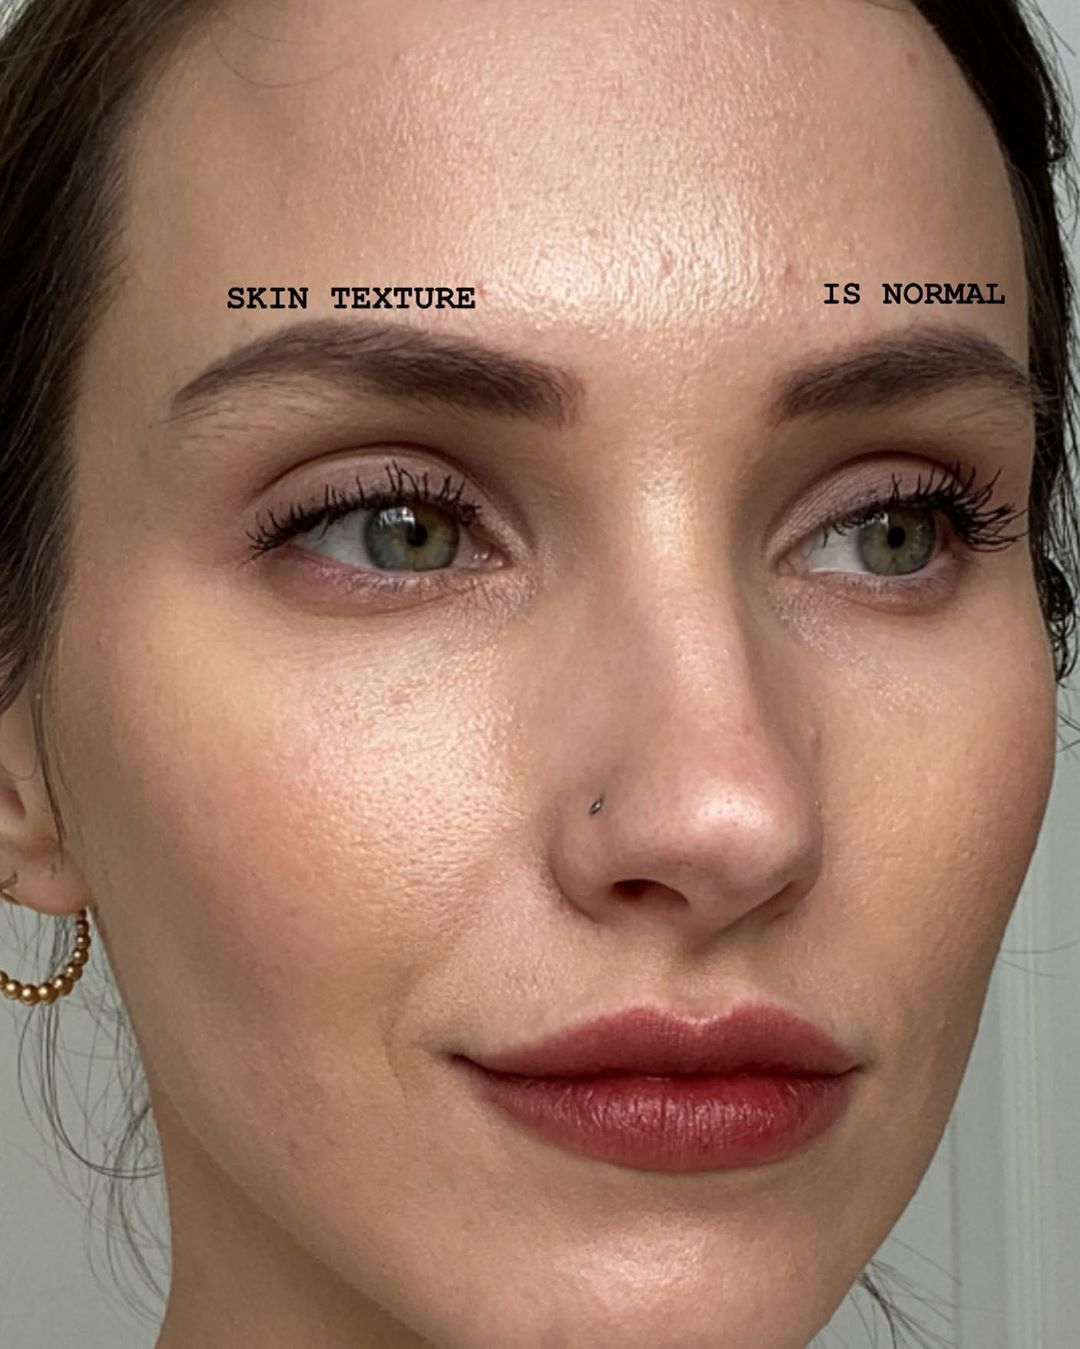 Real Skin Texture  Normalize Skin Texture  Skin textures, Skin